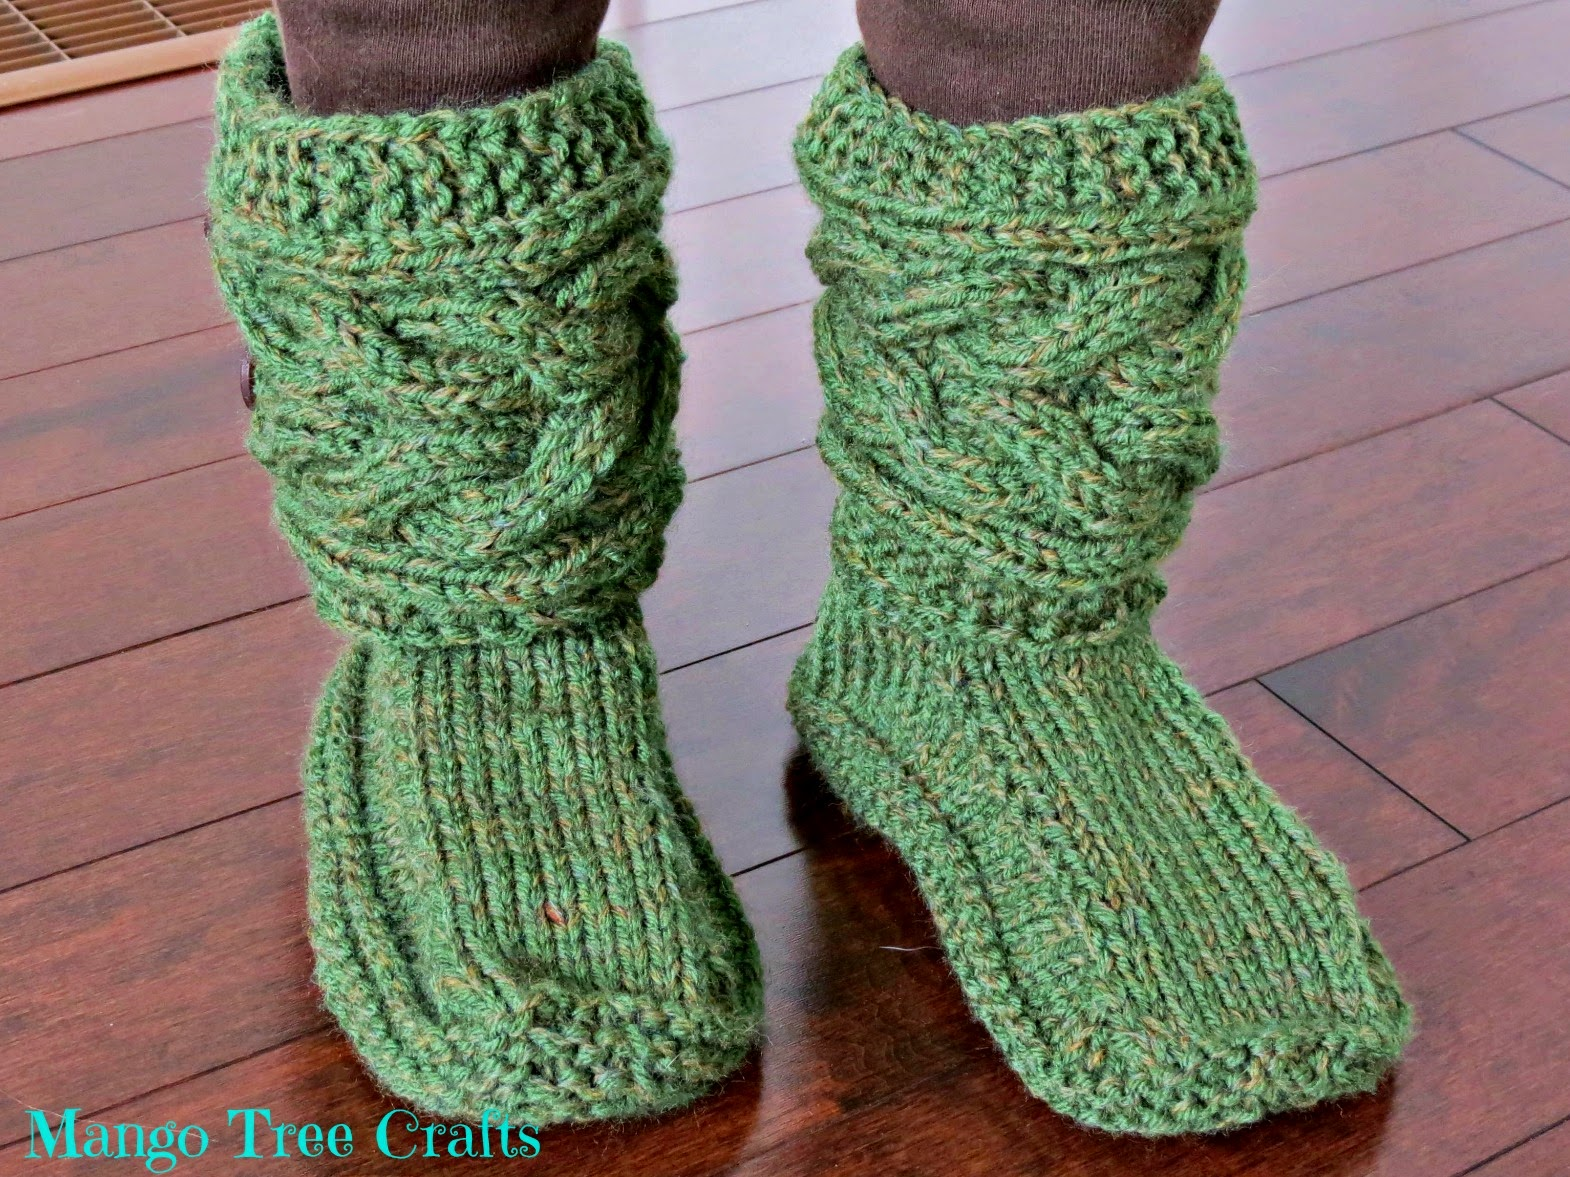 Knitting Pattern Ladies Slipper Boots : Mango Tree Crafts: Knitted Slipper Boots